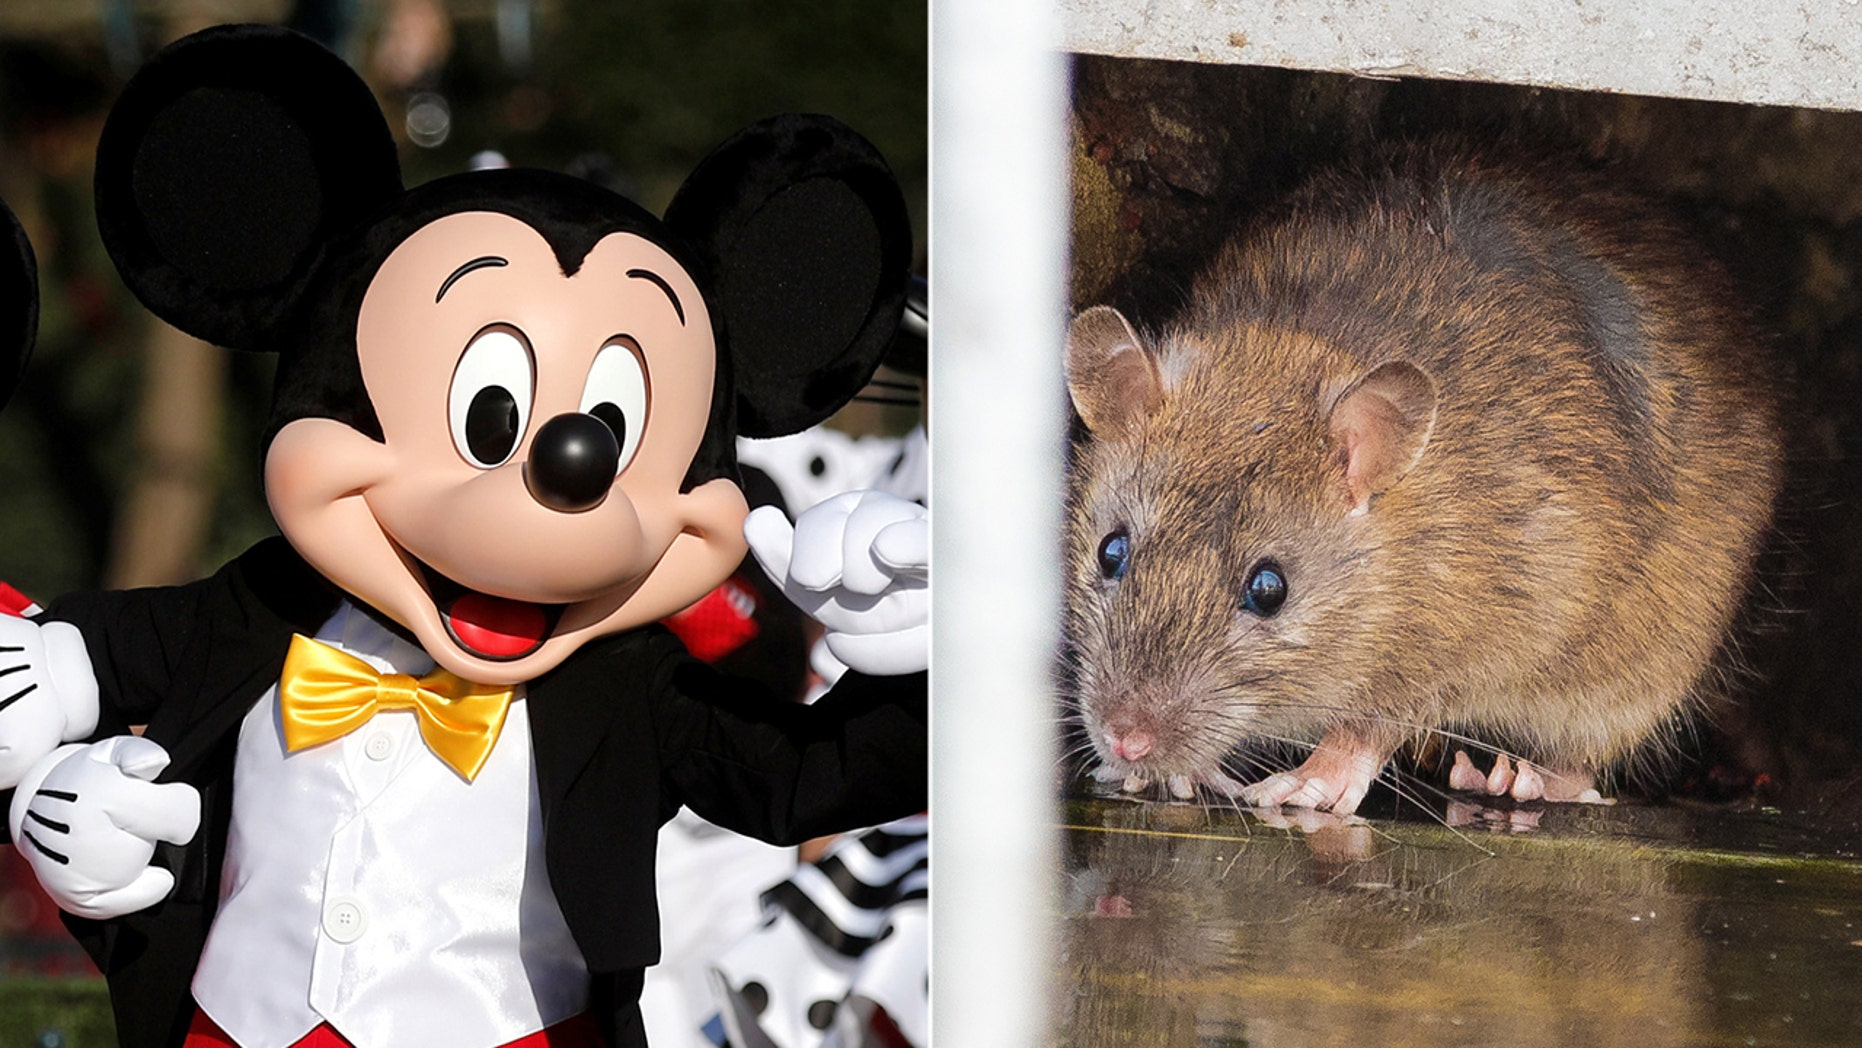 A former guest at Walt Disney World has filed a lawsuit against Disney Parks over the April 2014 incident.